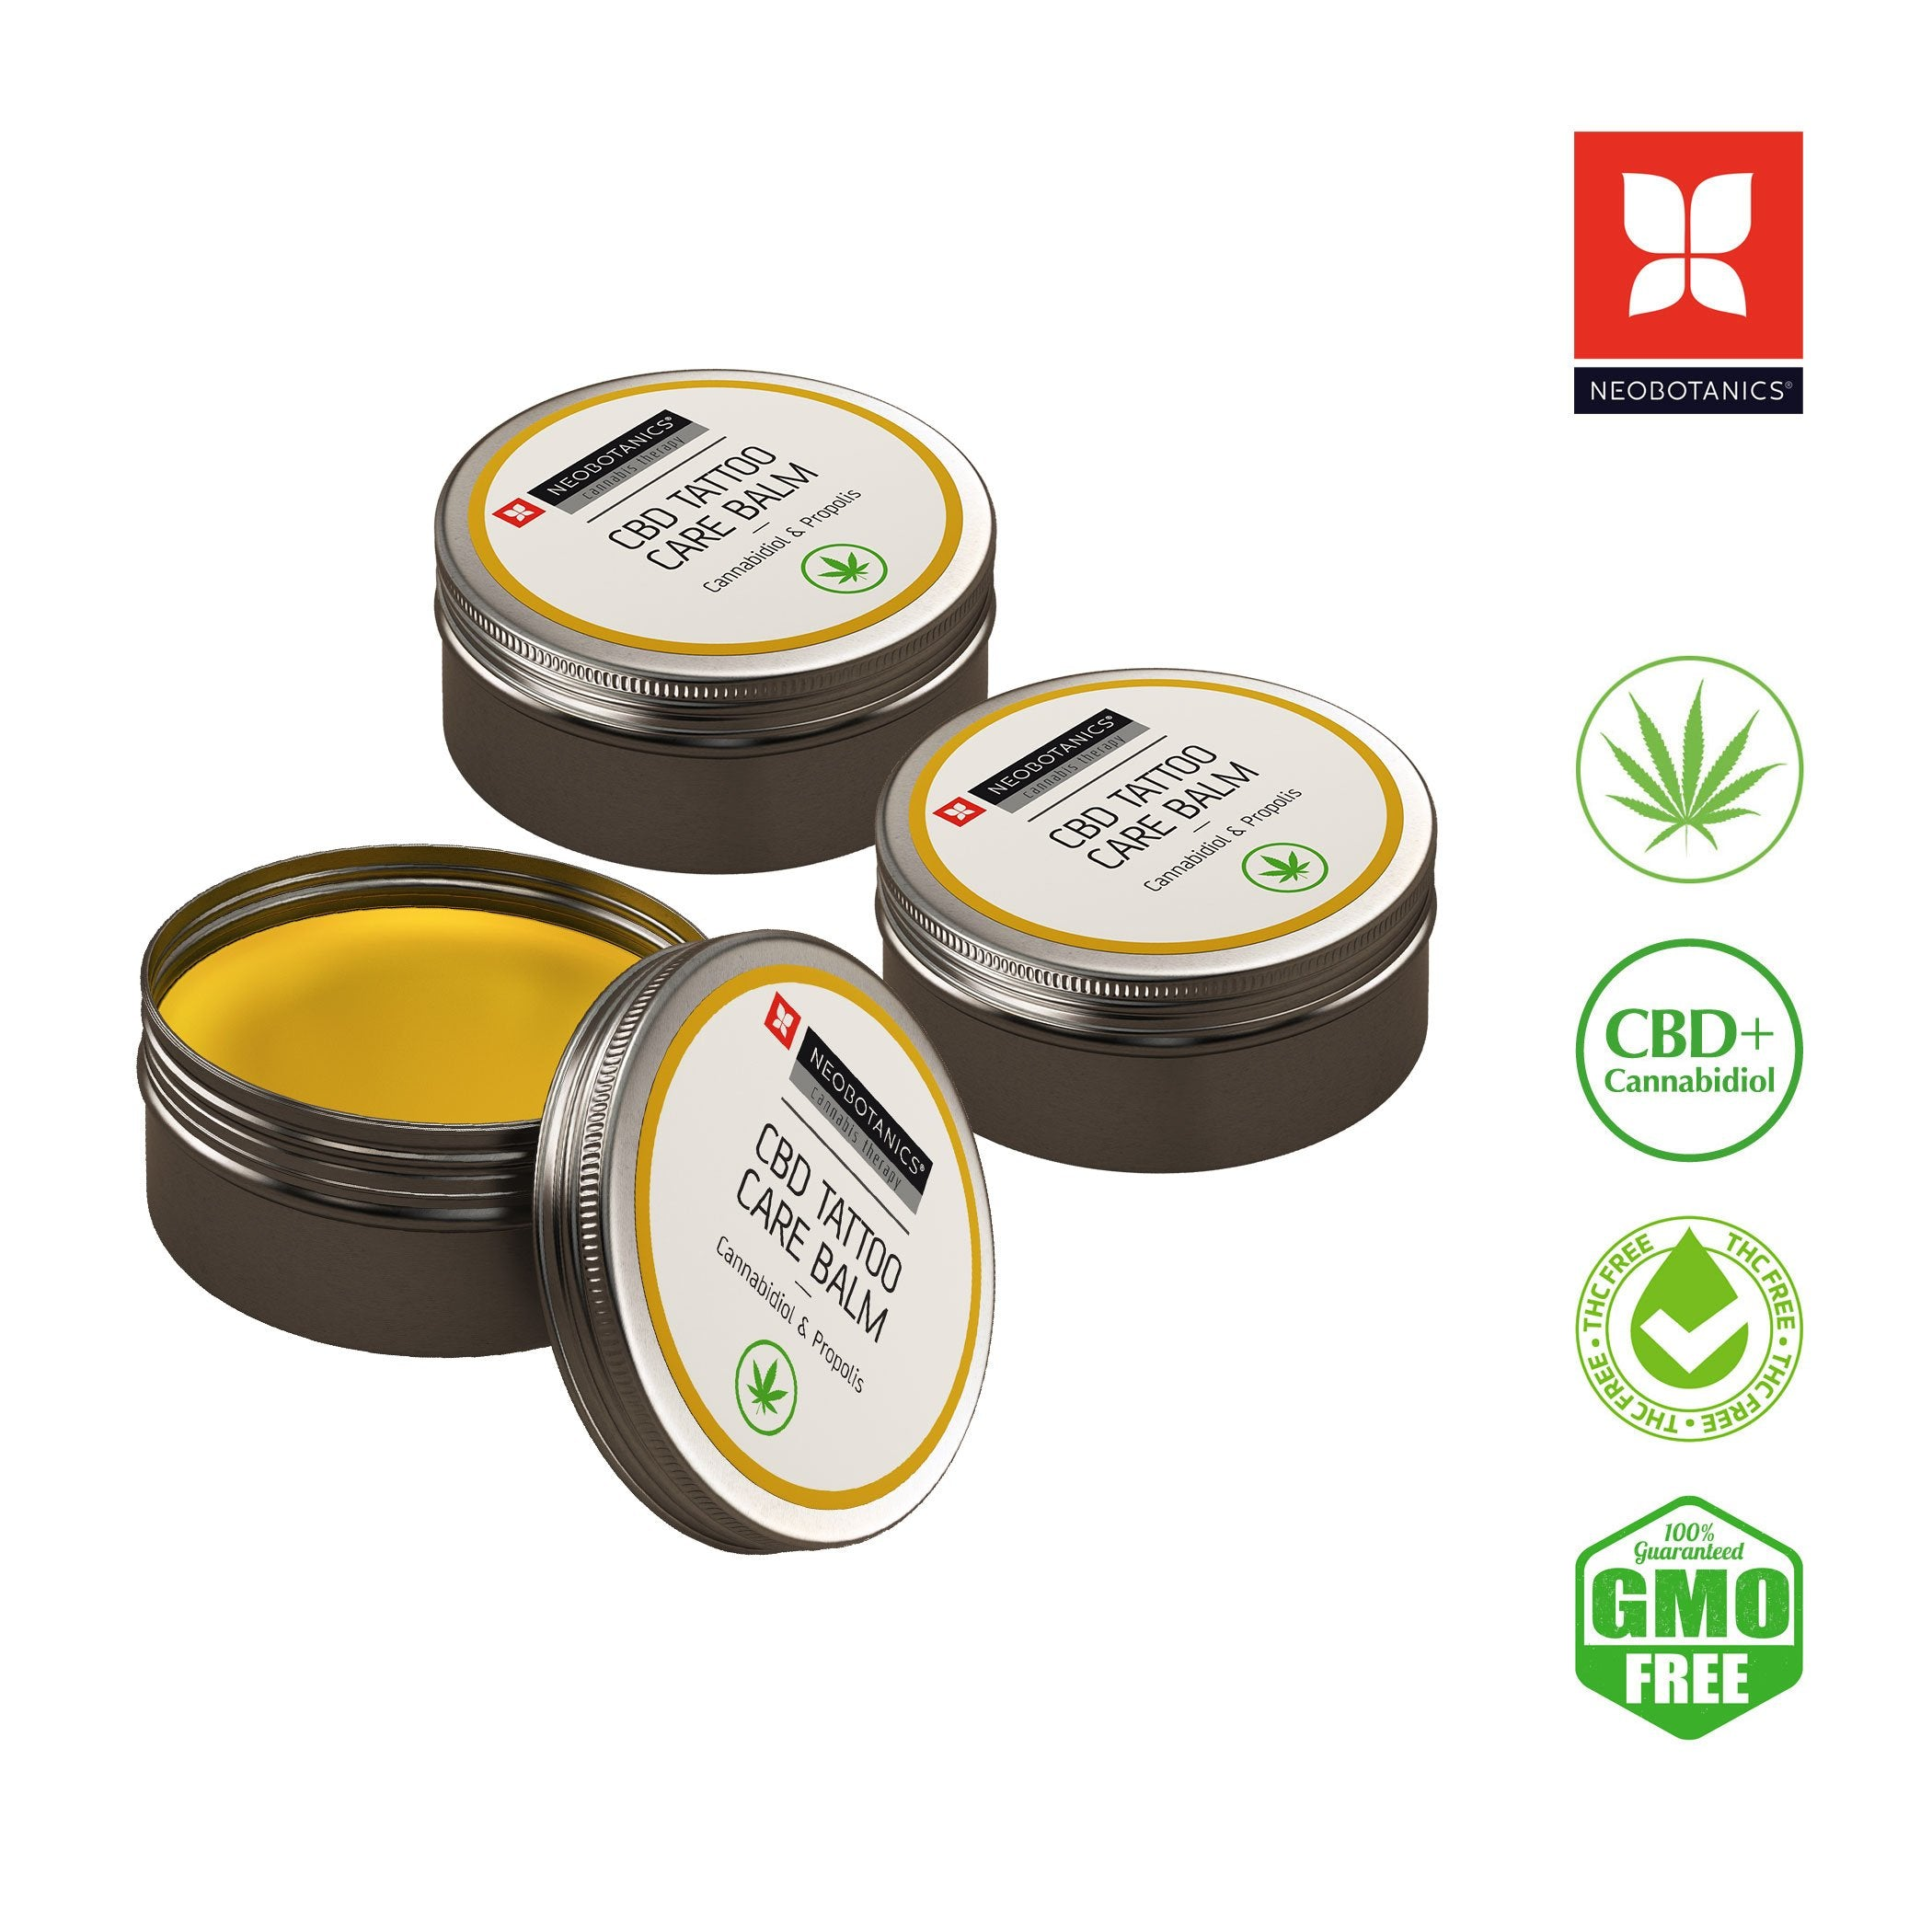 3x CBD TATTOO CARE BALM